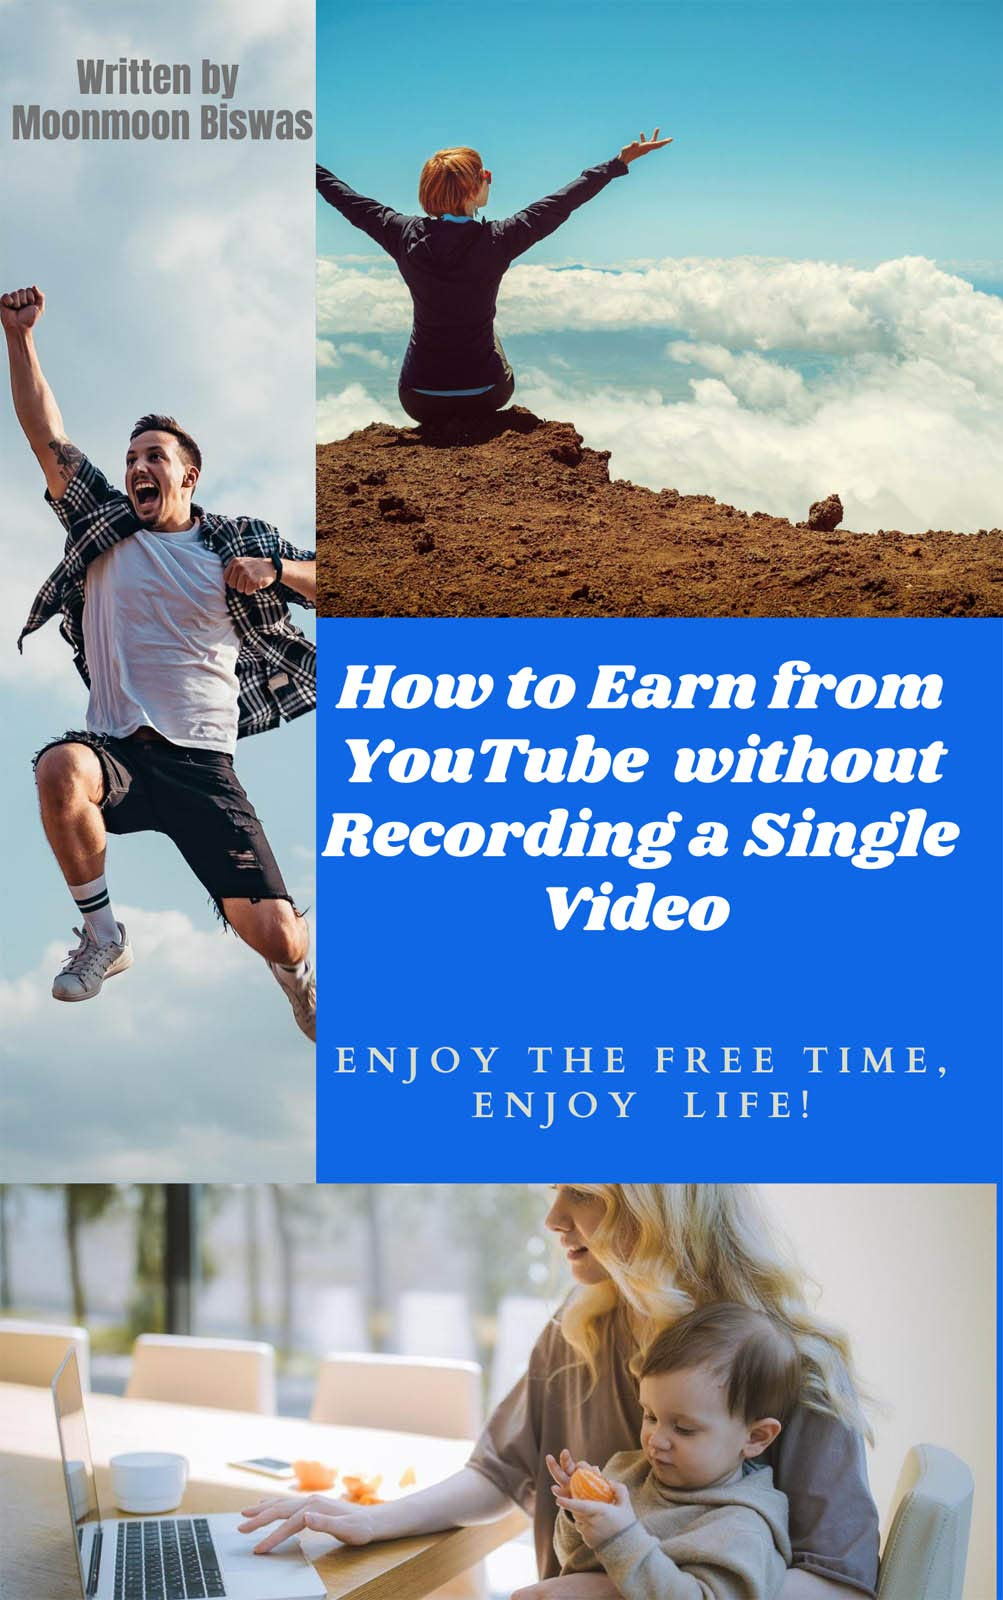 How to Earn from YouTube without recording a single Video: Enjoy the Free Time, Enjoy Life!